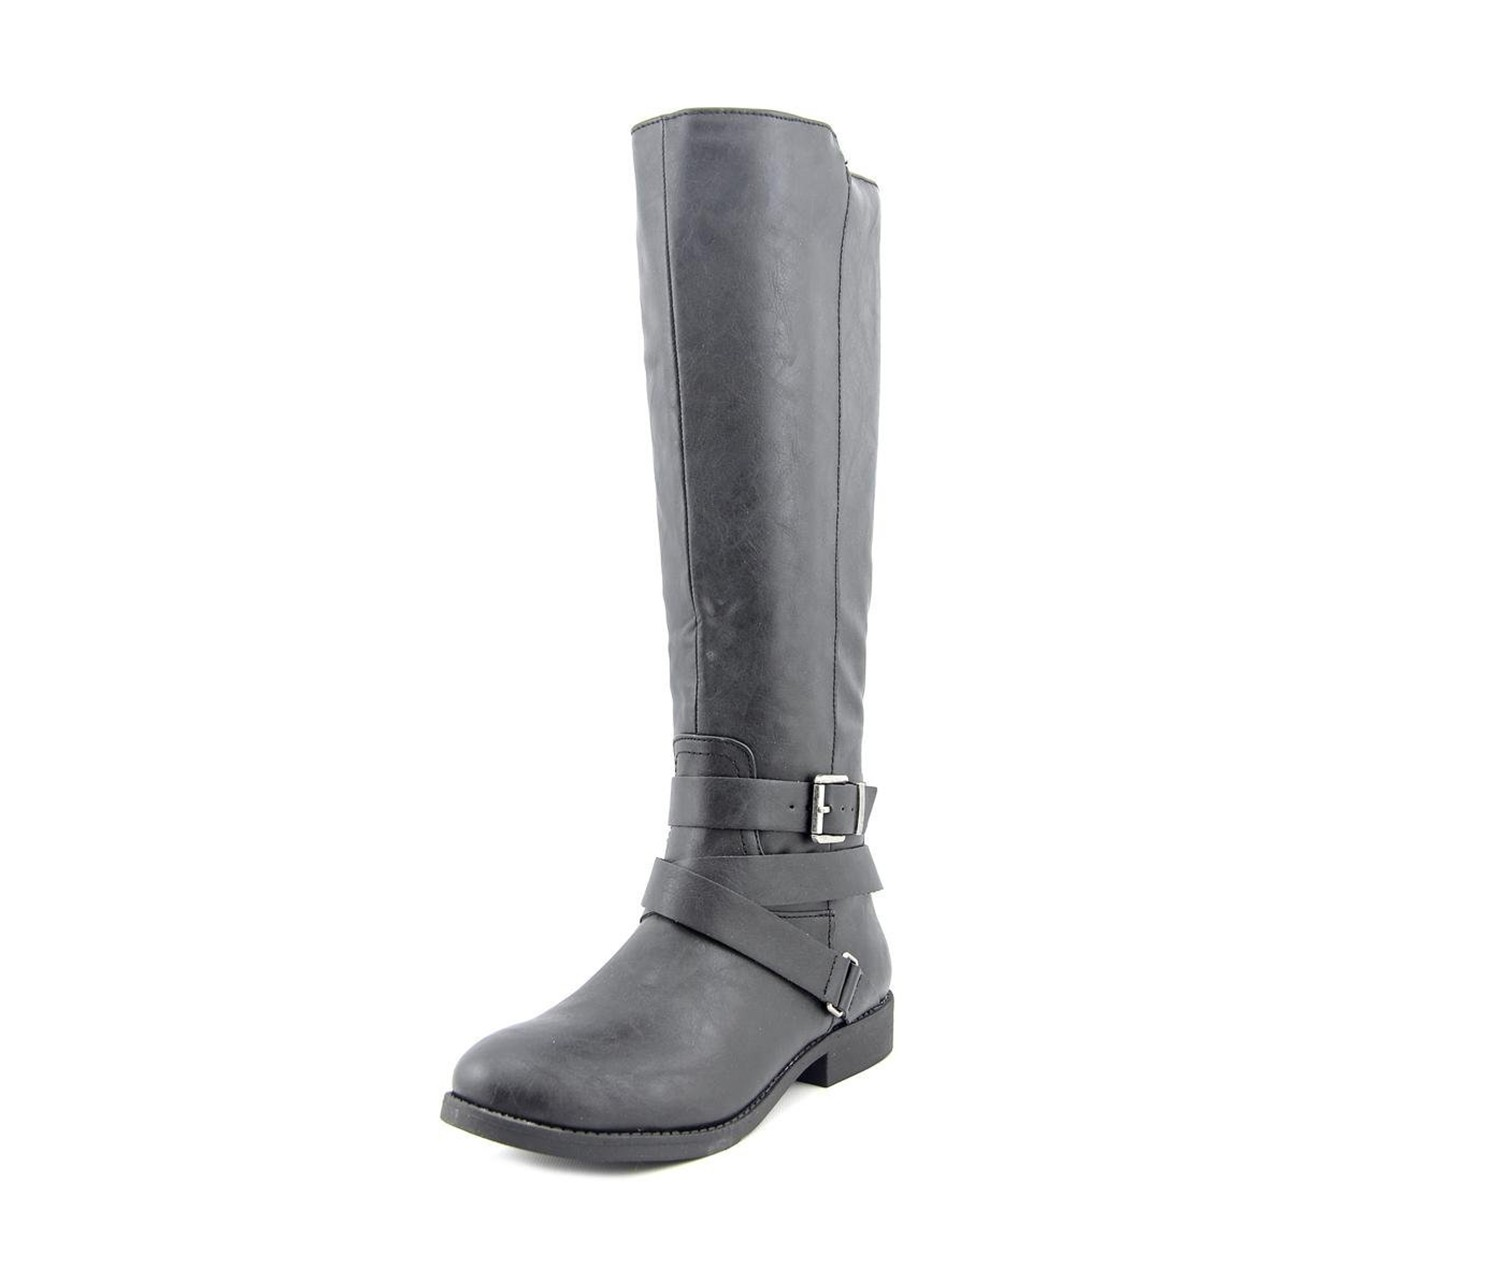 bab9d0295d45 Style Co Lolah Wide-Calf Boots